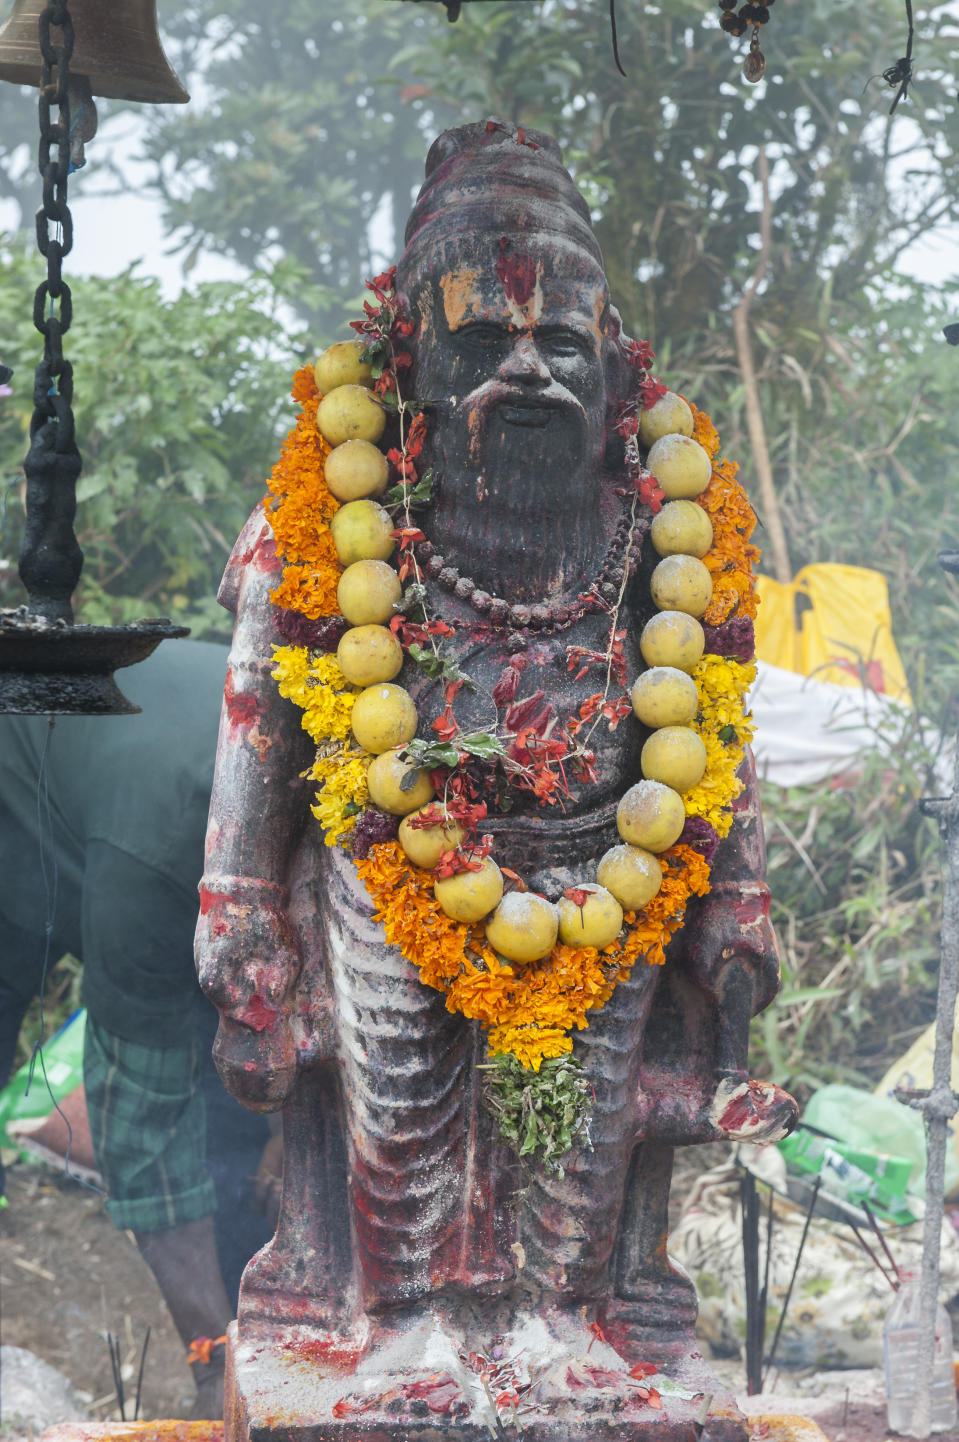 The statue of Agastya muni abode the Agastyaarkoodam mountain in south India